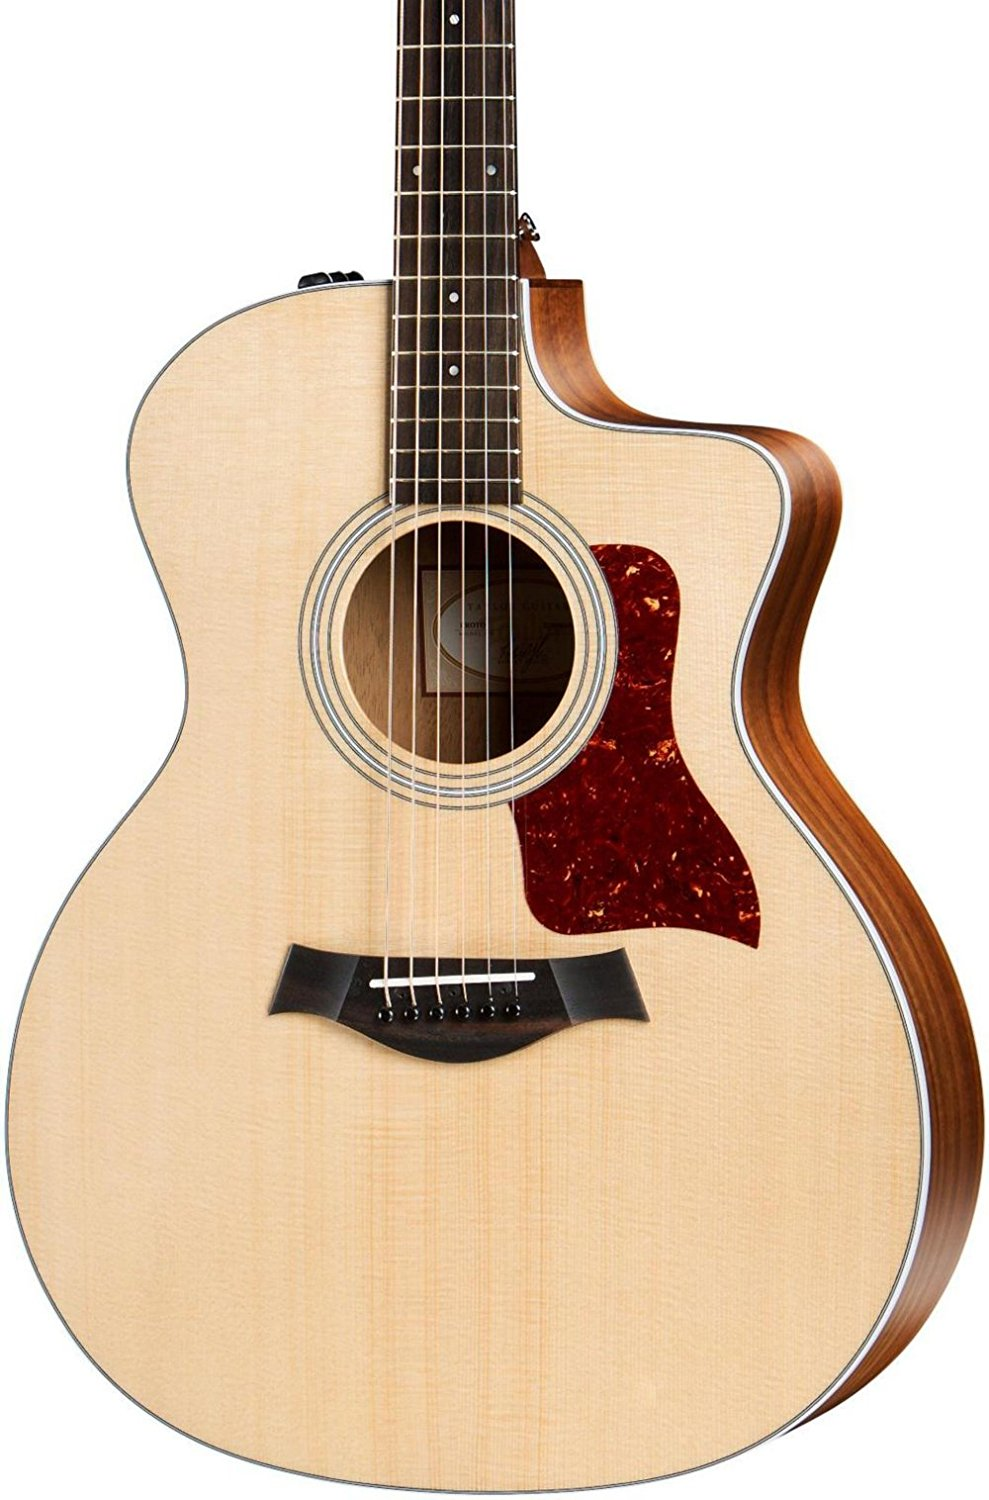 Top 5 Best Acoustic Guitar under 1000 Dollars 1